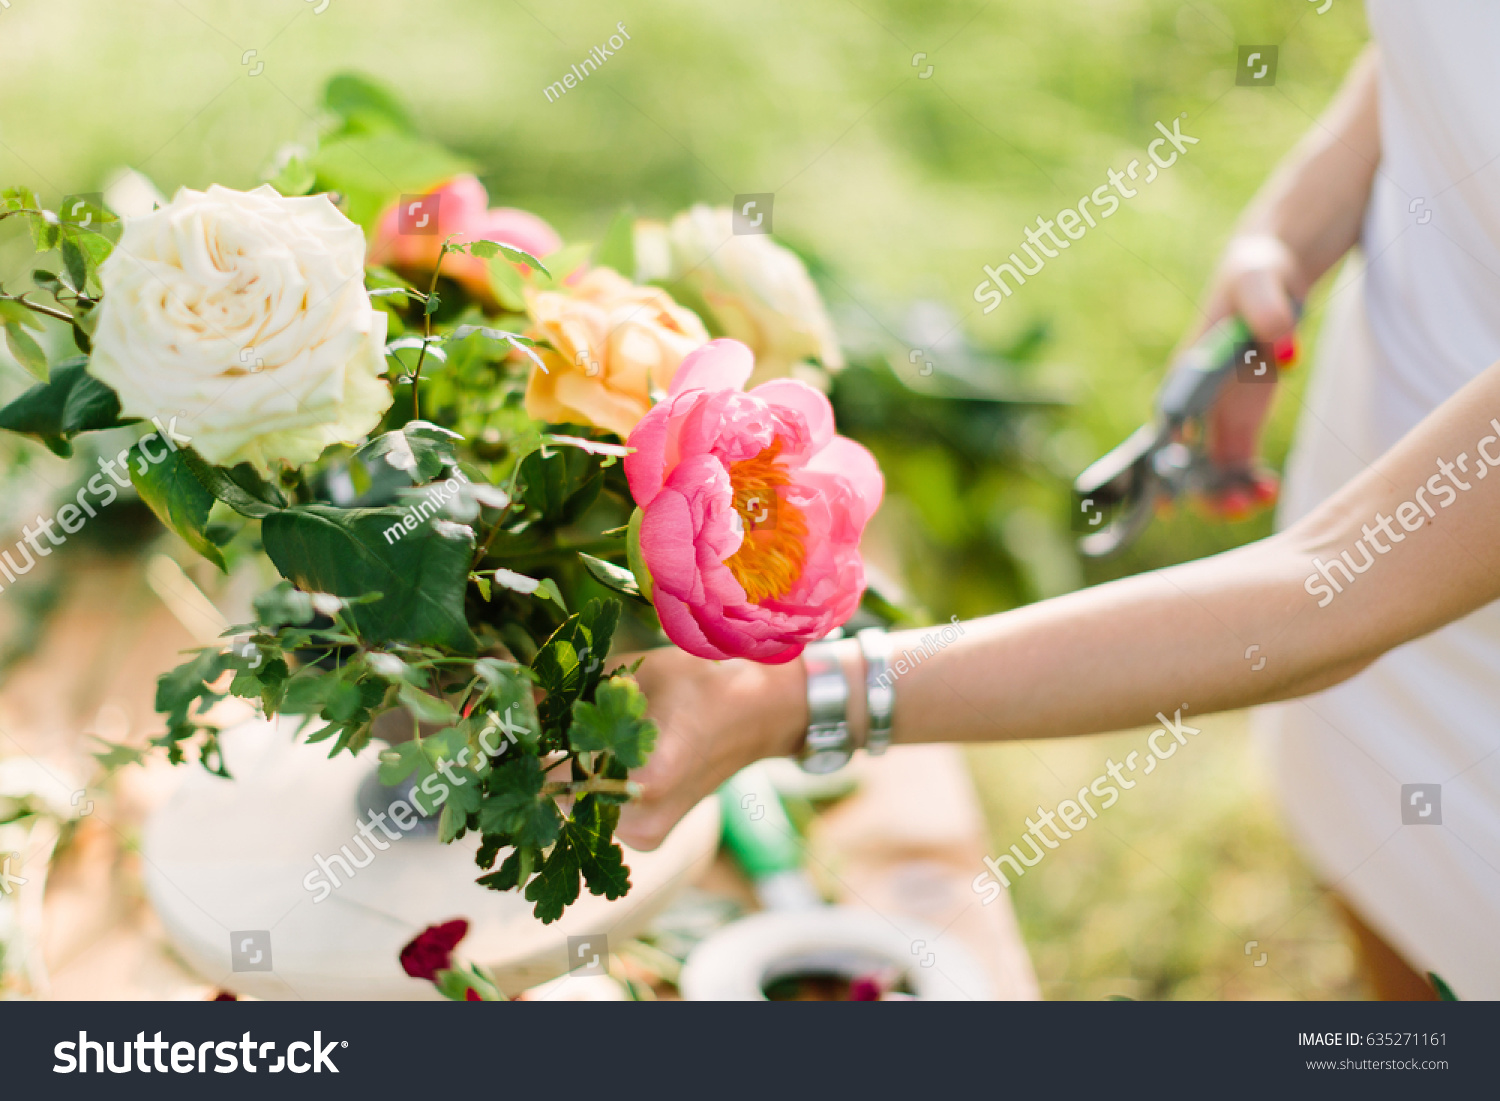 bouquet, people and floral arrangement concept - close-up on hands of young women decorating beautiful bouquet of fresh summer yellow and white roses, pink peonies, pruning shear in female hand #635271161